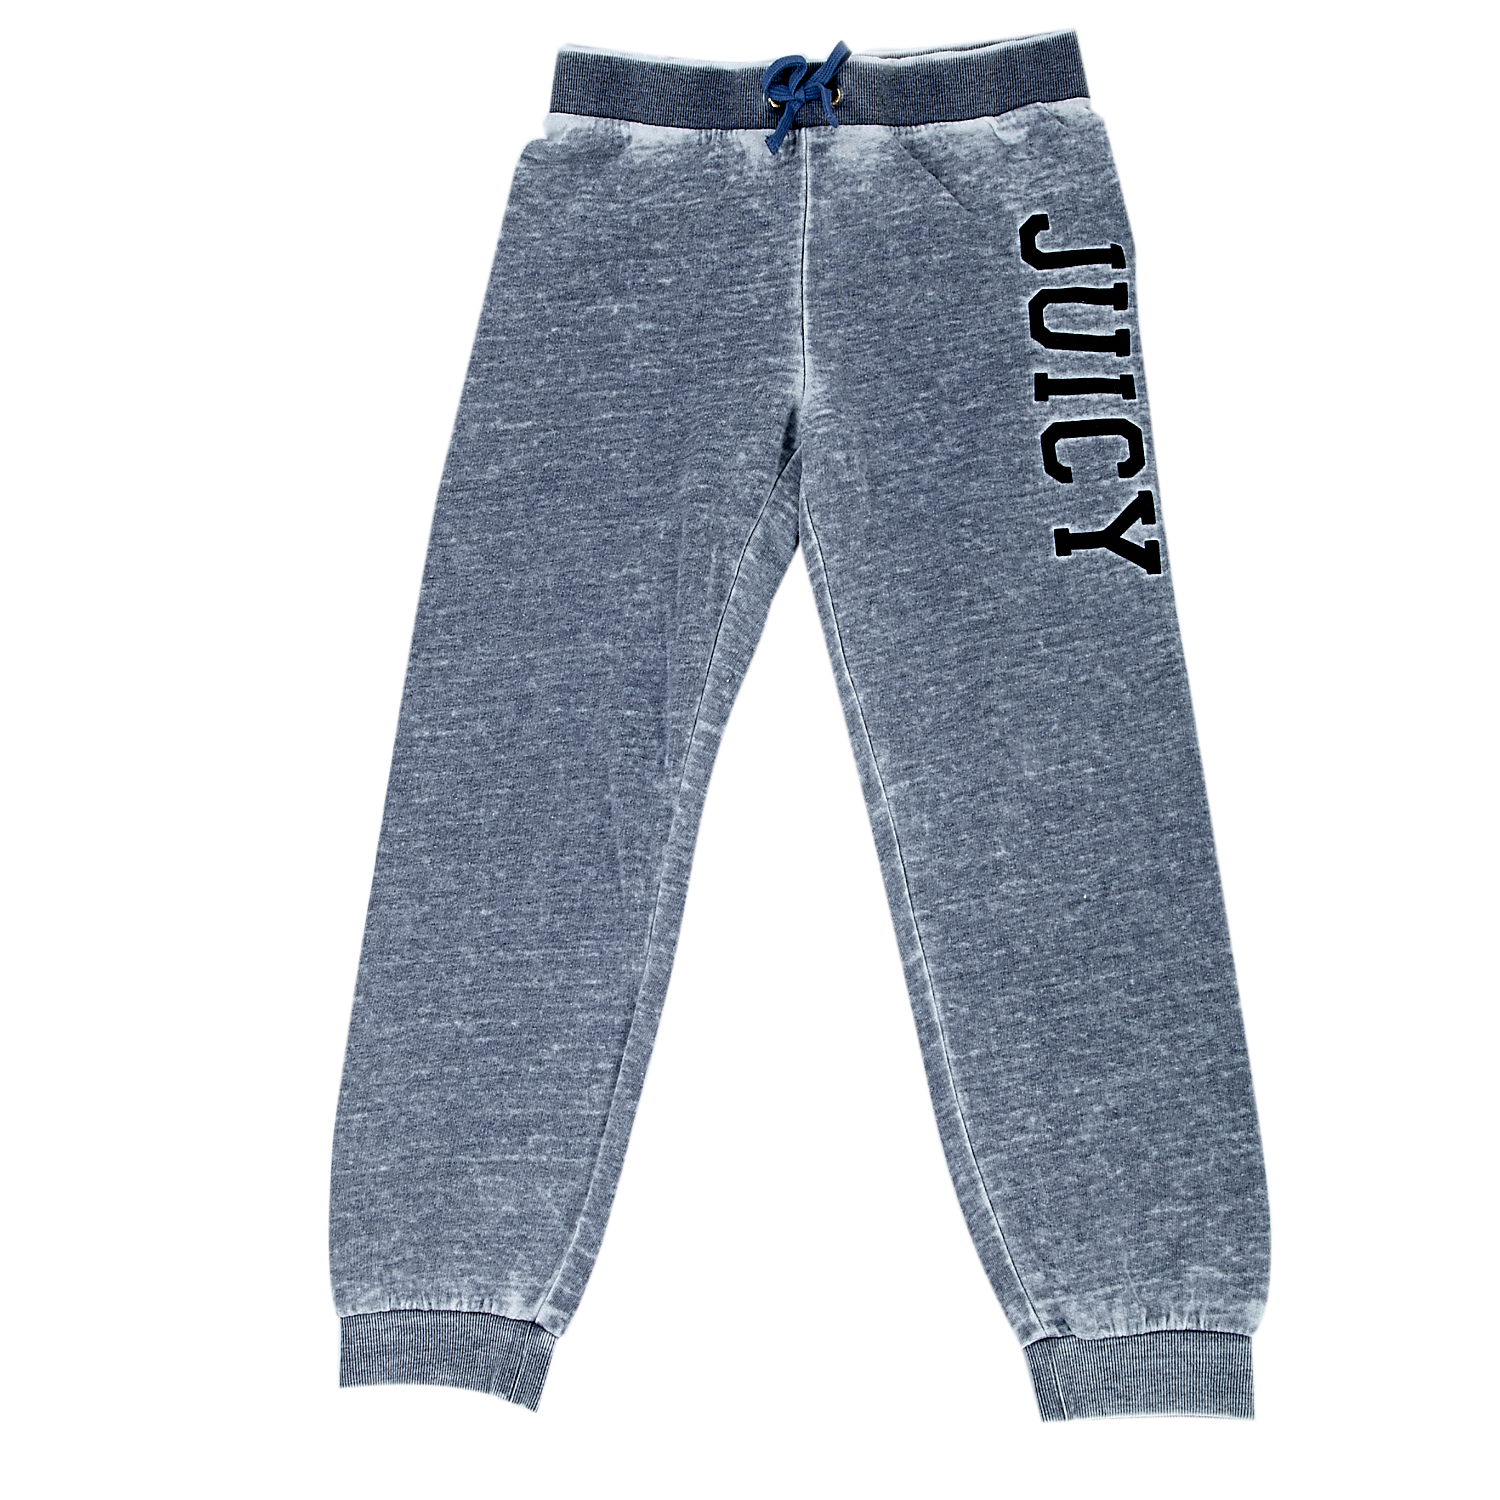 6cef460f254 JUICY COUTURE KIDS - Παιδικό παντελόνι Juicy Couture μπλε, ΠΑΙΔΙ ...